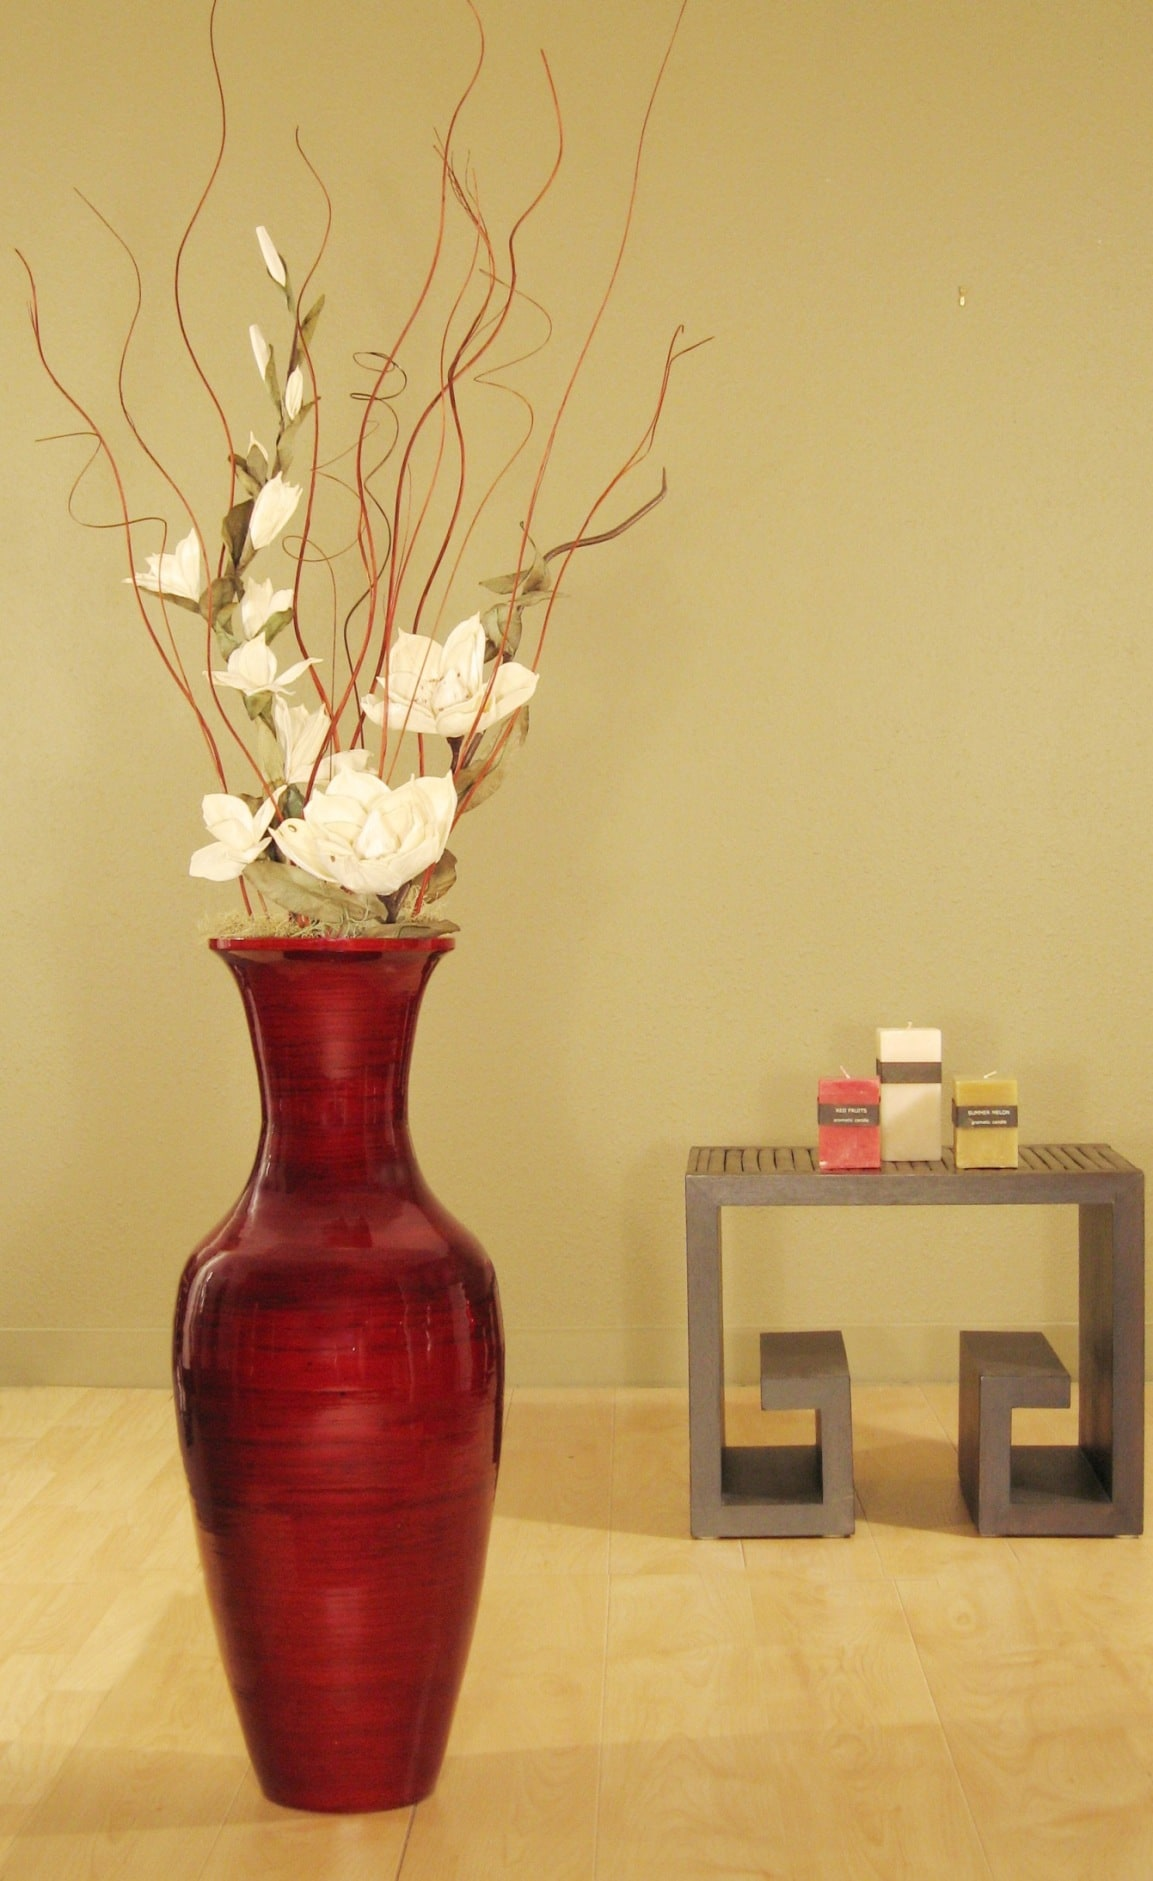 Bamboo Floor Vase And White Magnolias 11052380 Overstock Com Shopping Great Deals On Vases